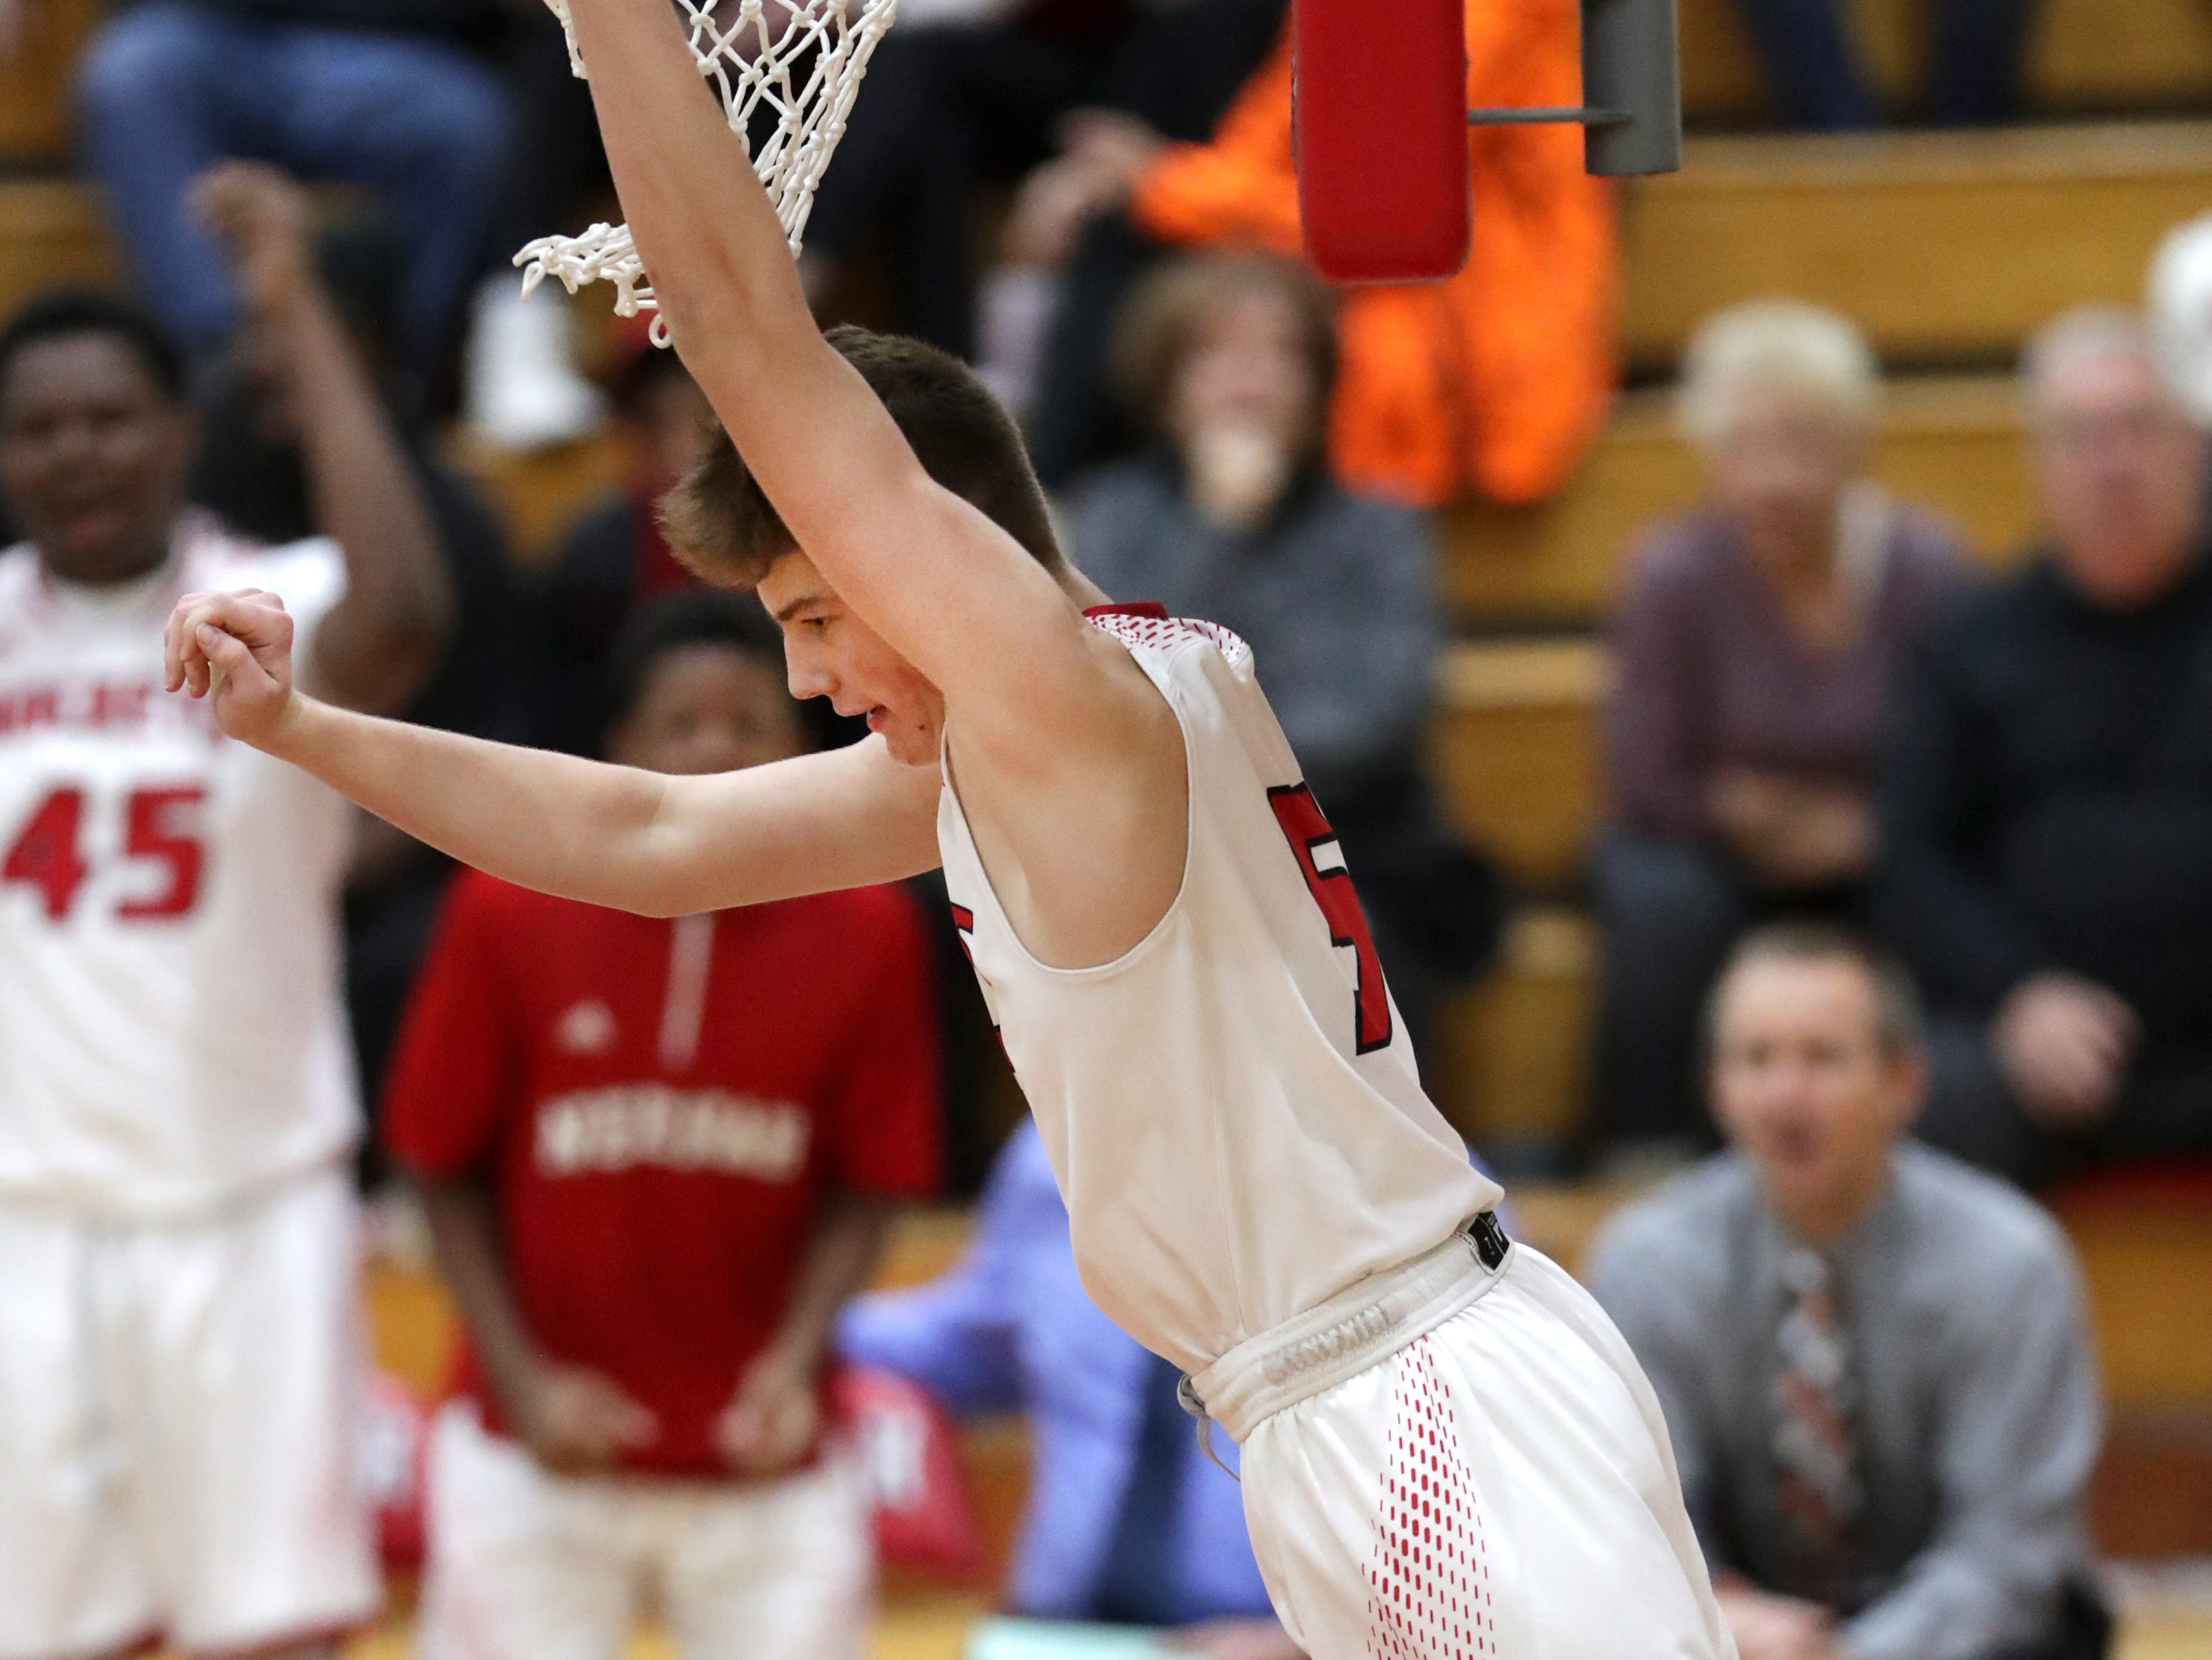 Neenah High School's #5 Max Klesmit  hangs from the rim against Hortonville High School during their Fox Valley Association boys basketball game on Friday, November 30, 2018, in Neenah, Wis. Neenah defeated Hortonville 71 to 67 in overtime.